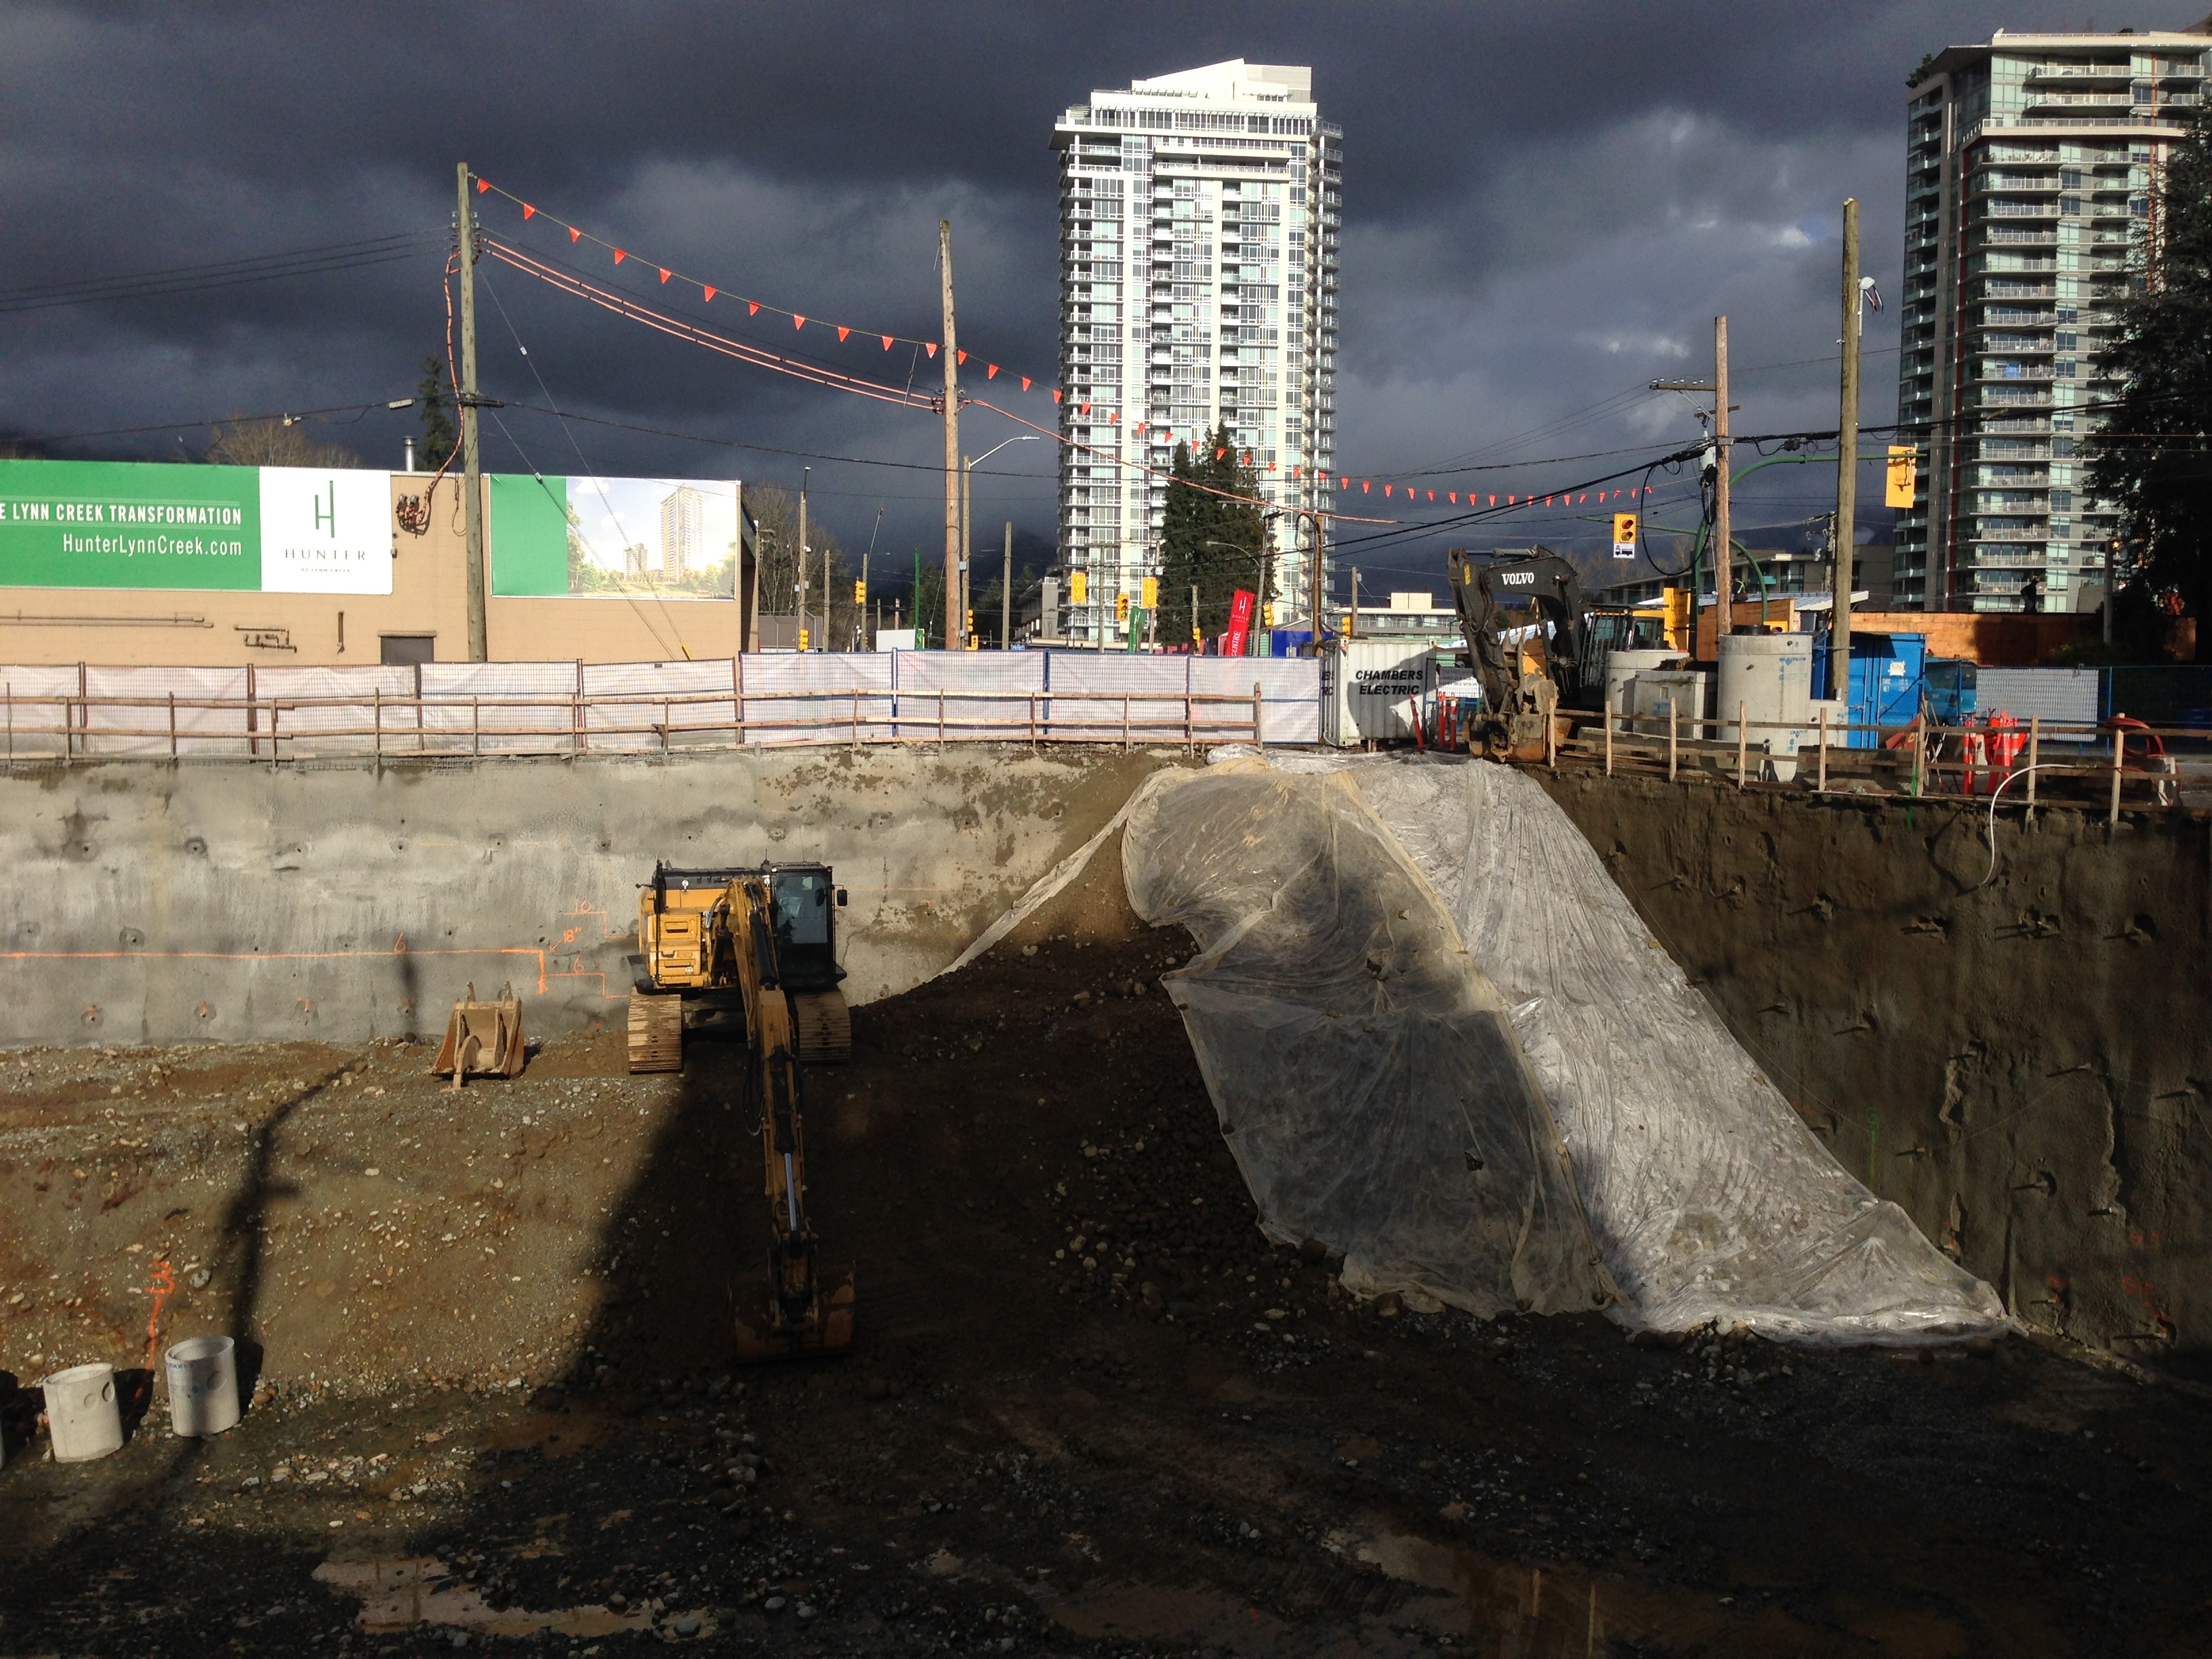 851px version of North-Van-Hole.JPG